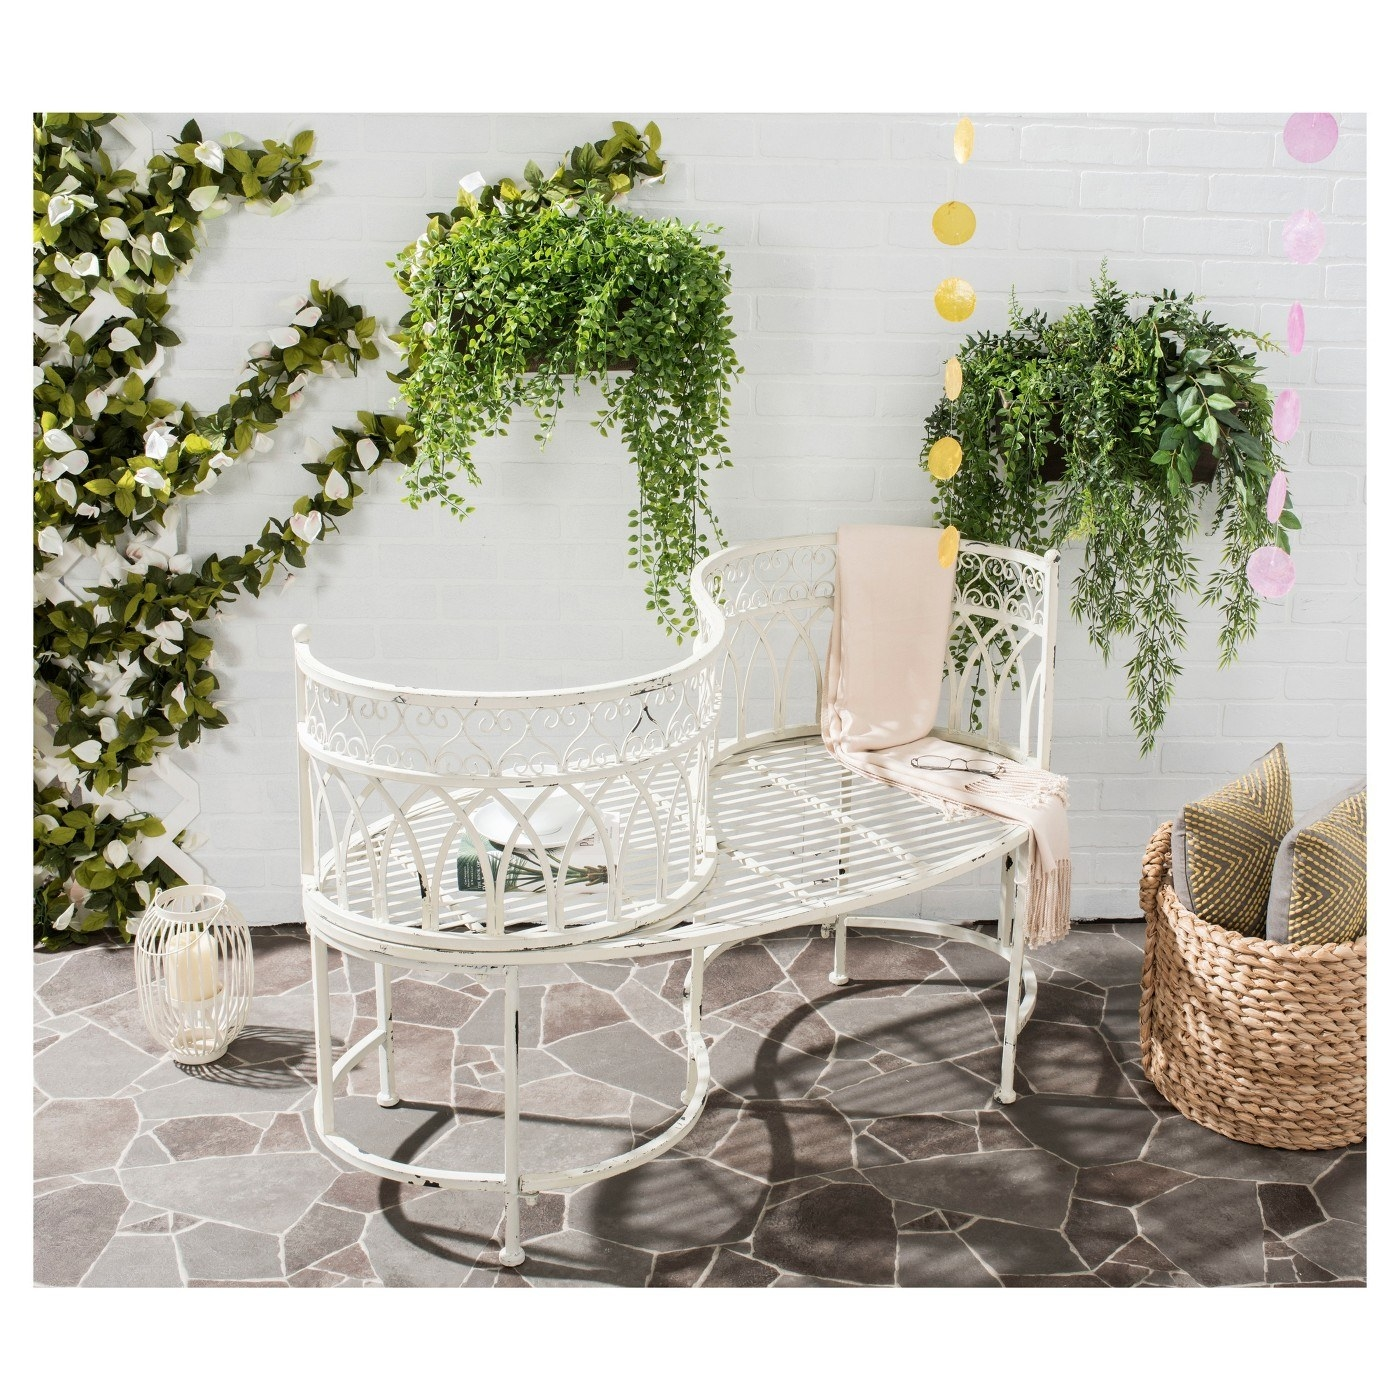 Target Makes Your Patio A Dreamy Destination For Very Lilu0027 Effort (and Not  A Lot Of Dough) Because Everything In The Summer Should Be Easy, Breezy.